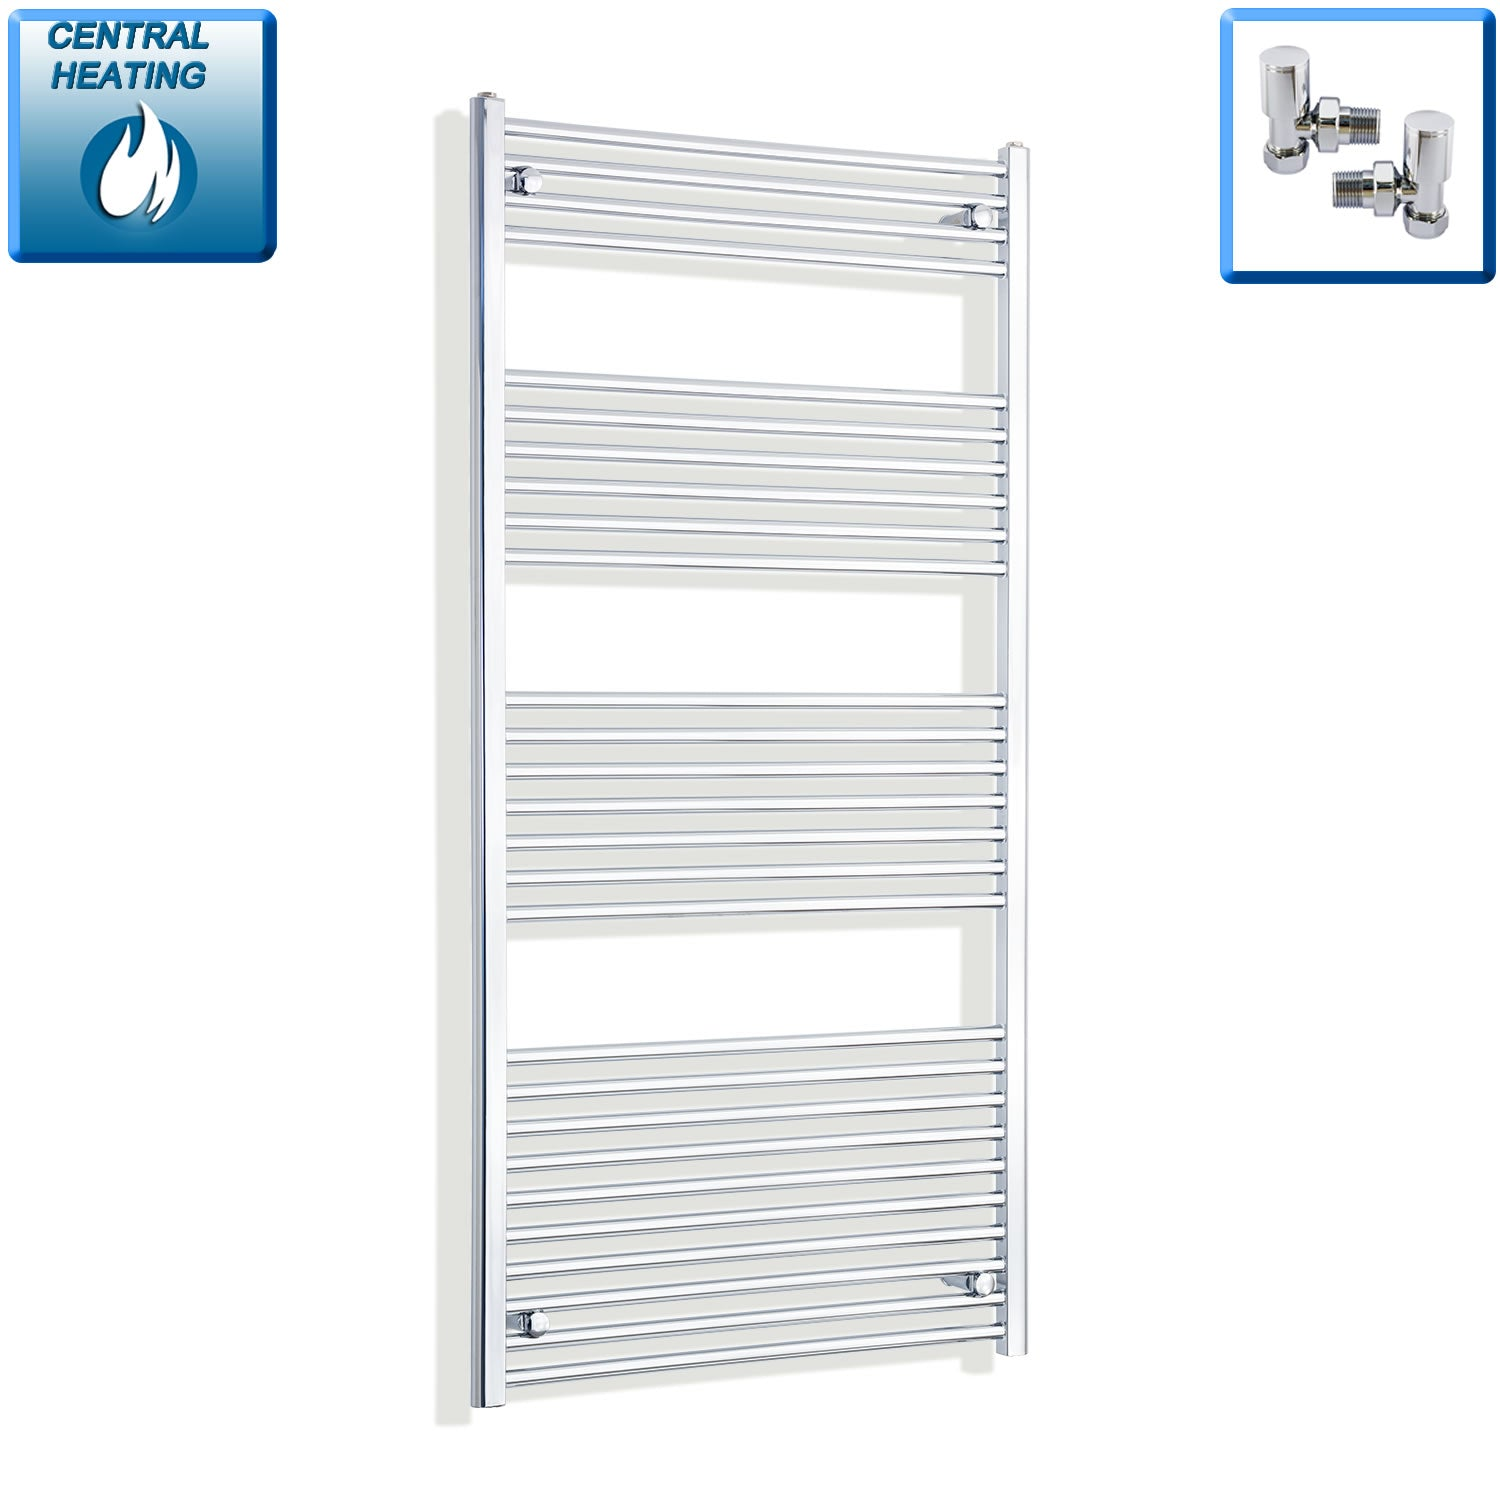 750mm Wide 1600mm High Curved Chrome Heated Towel Rail Radiator HTR,With Angled Valve